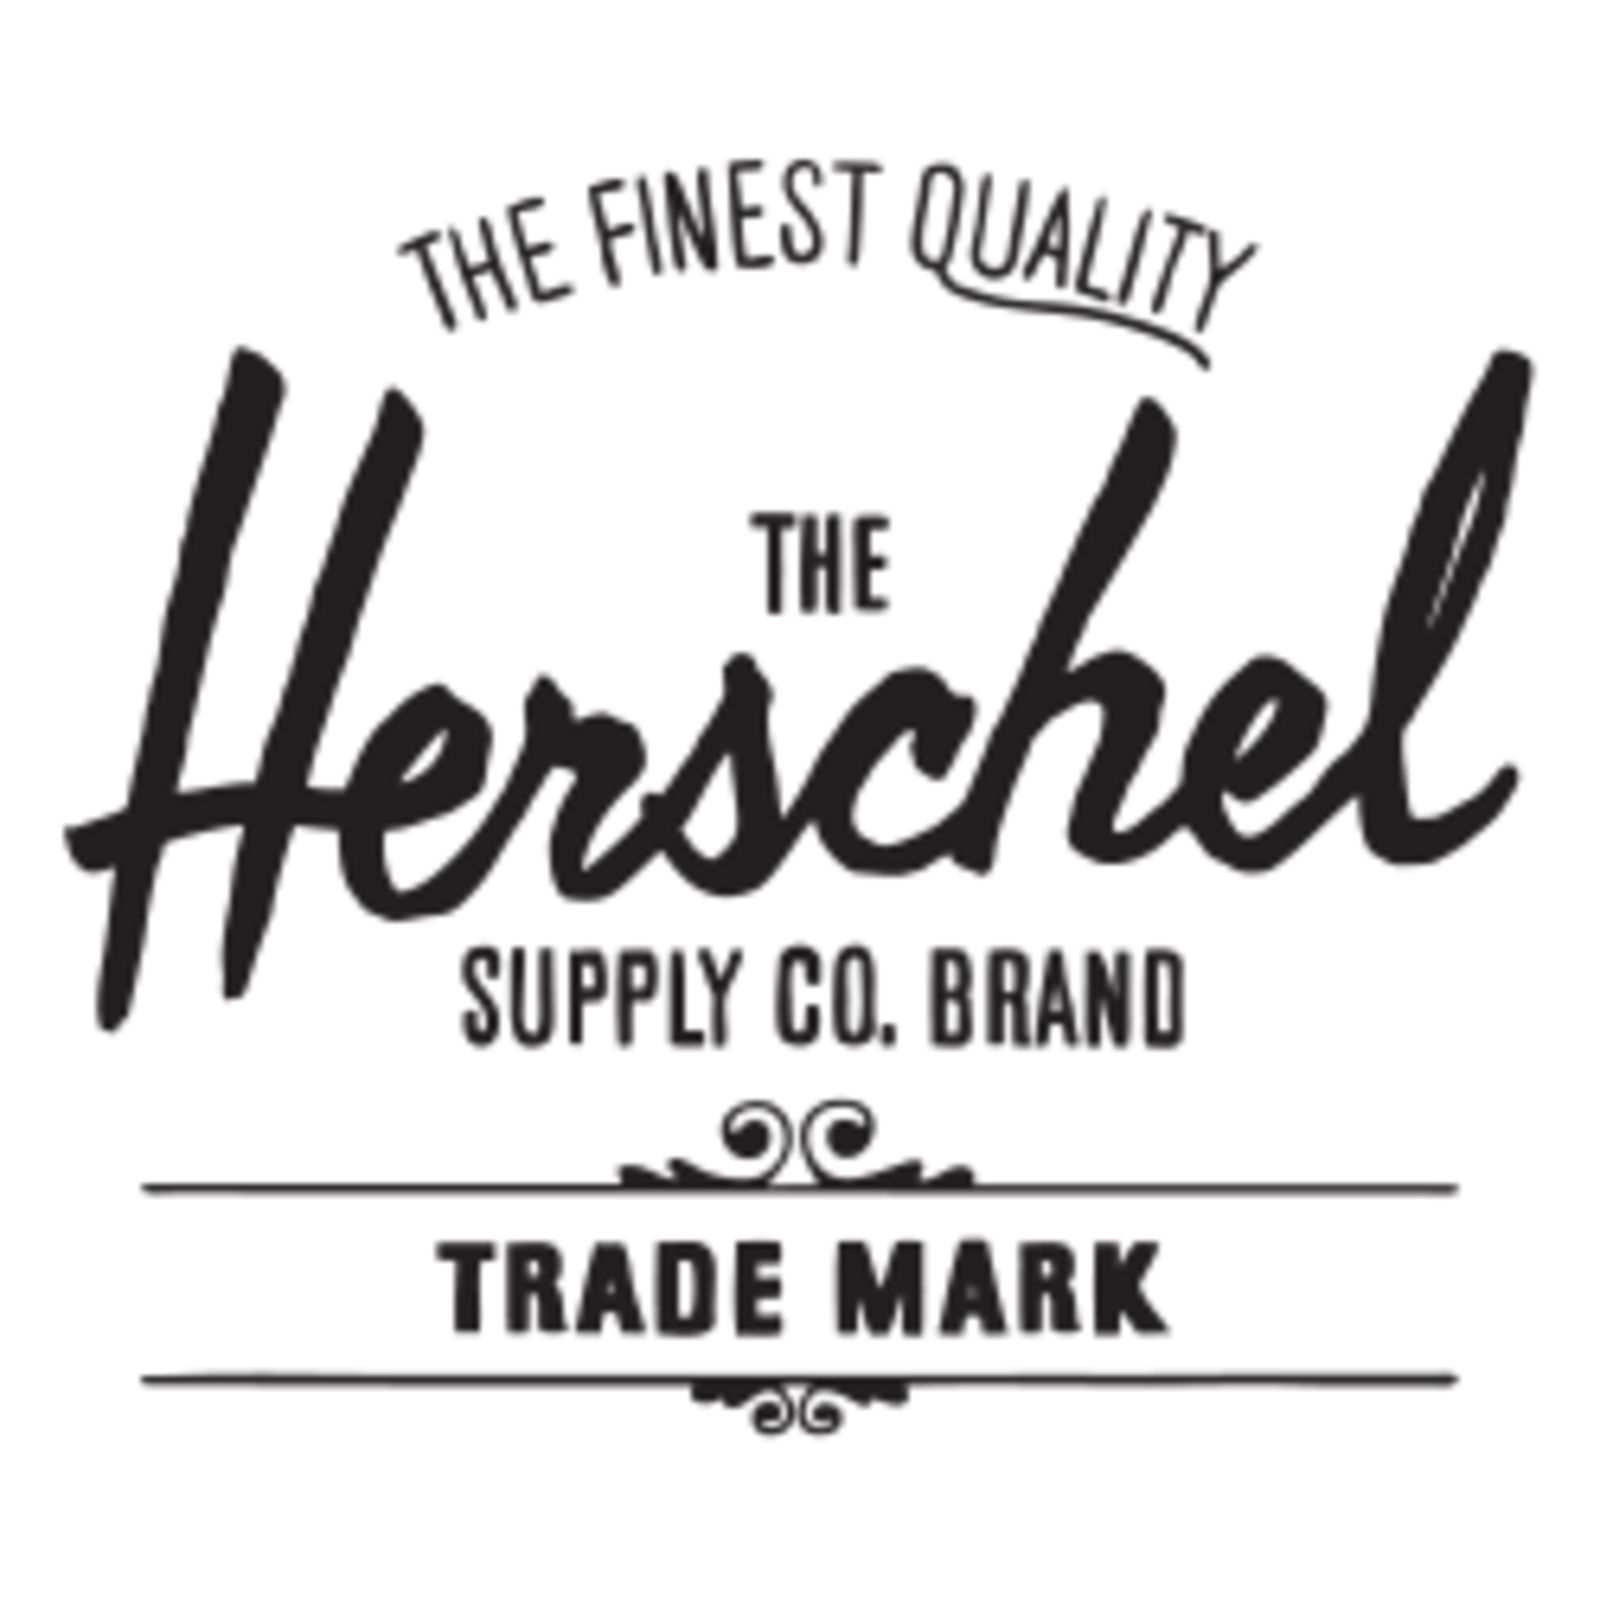 HERSCHEL SUPPLY CO. (Image 1)